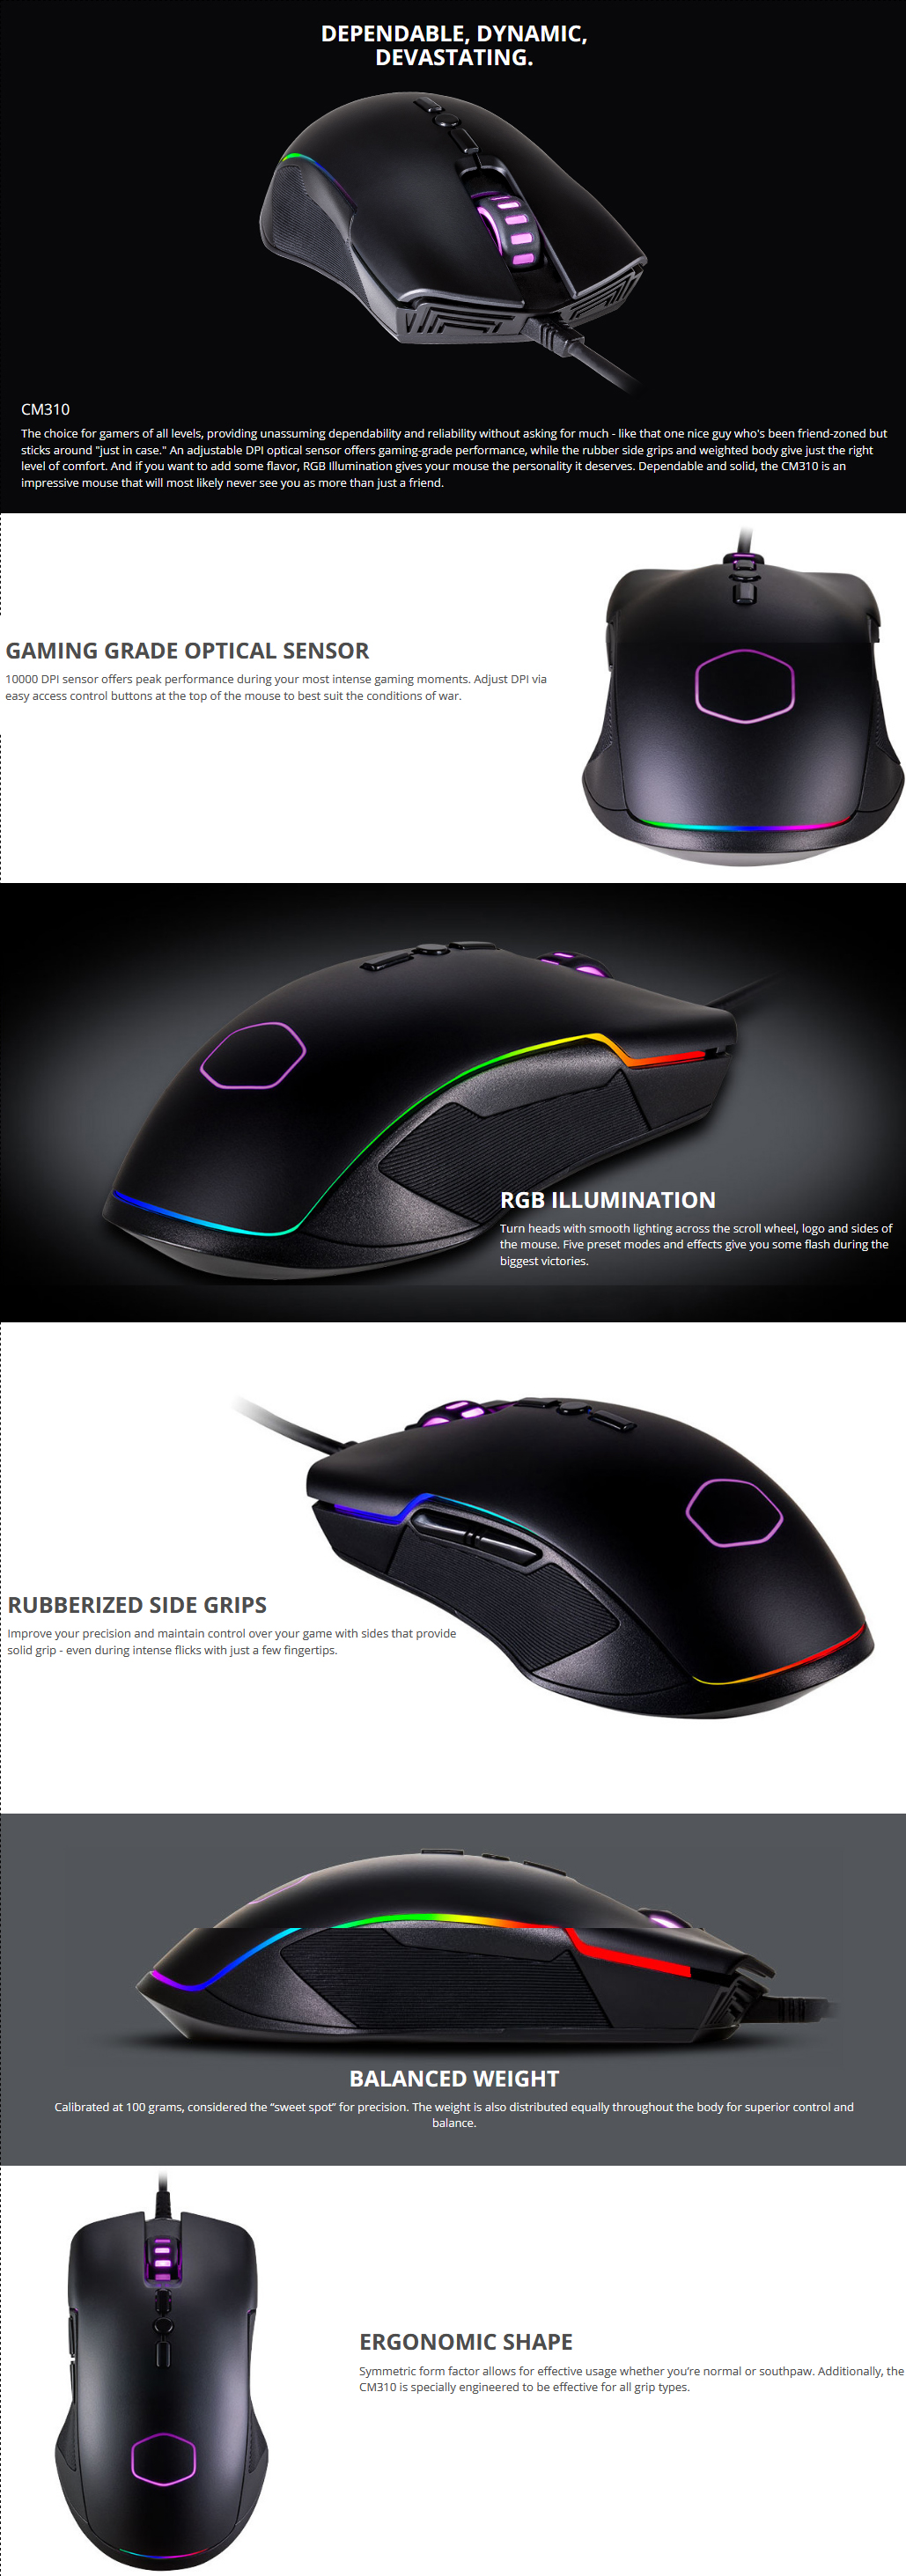 2fbcb6b3cdd Buy Online COOLER MASTER CM310 Ergonomic Wired Gaming Mouse CM-310 ...